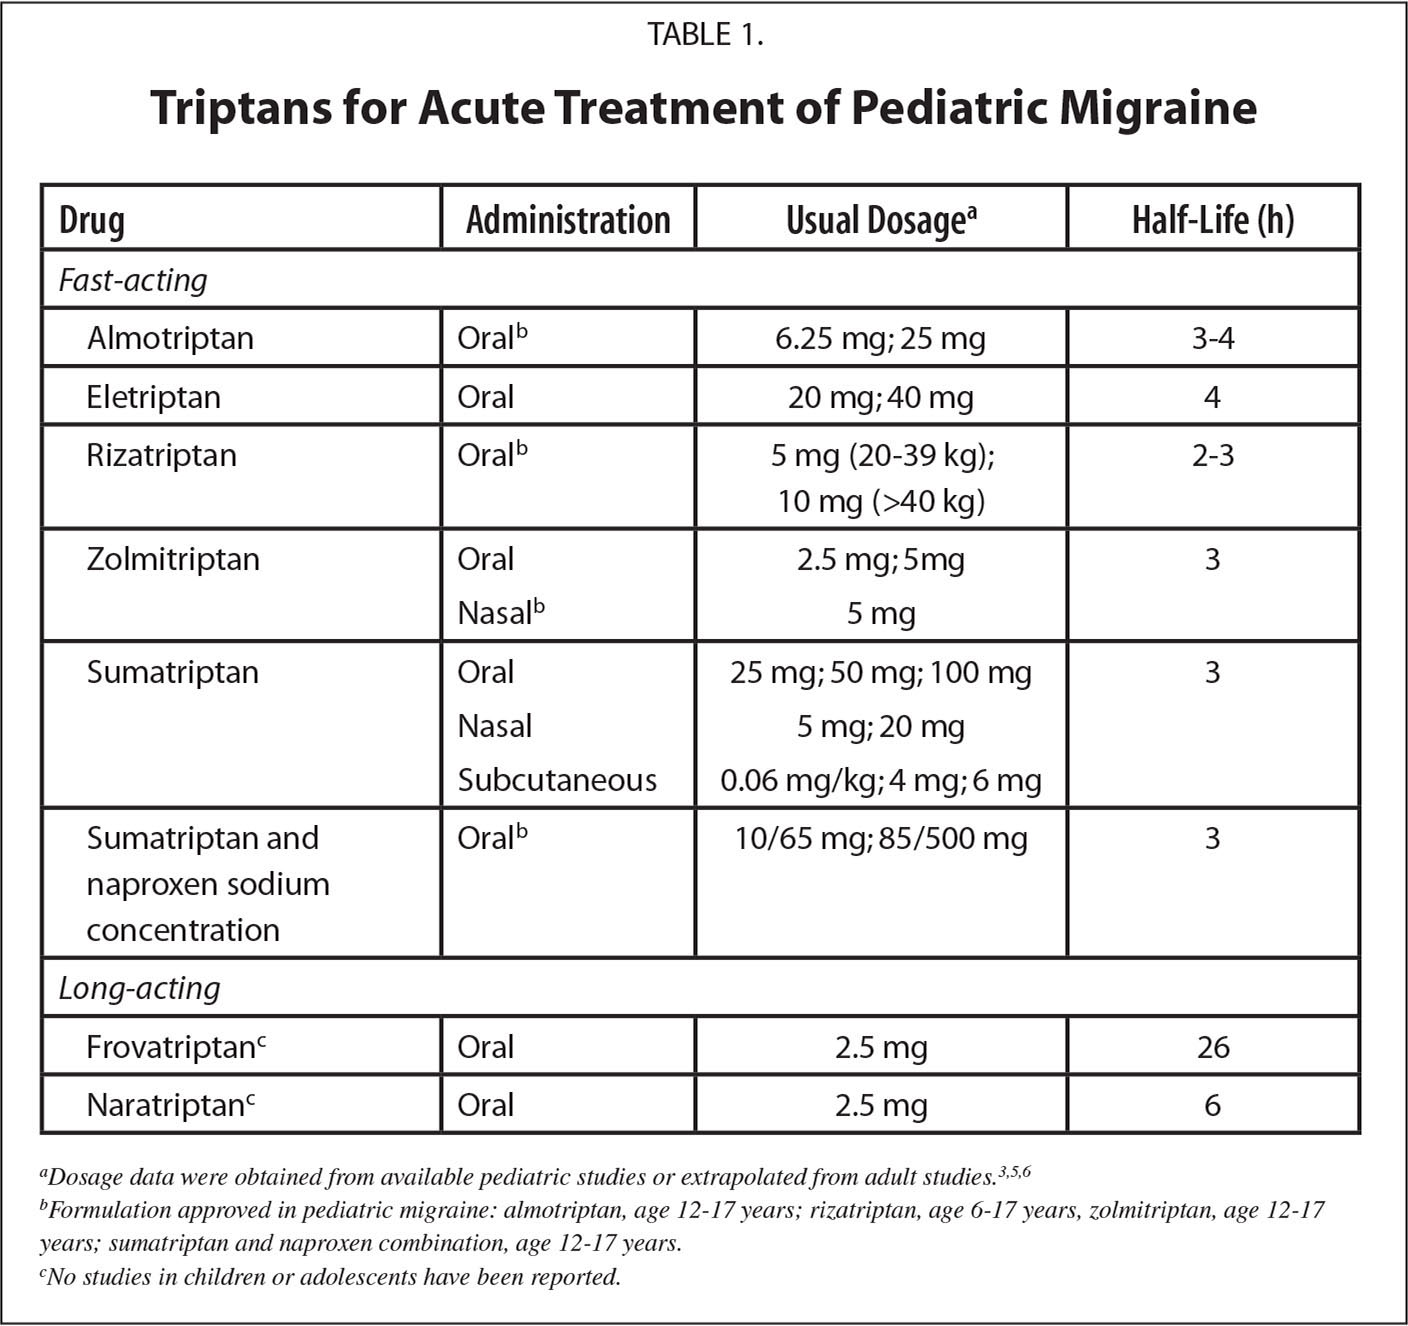 Triptans for Acute Treatment of Pediatric Migraine